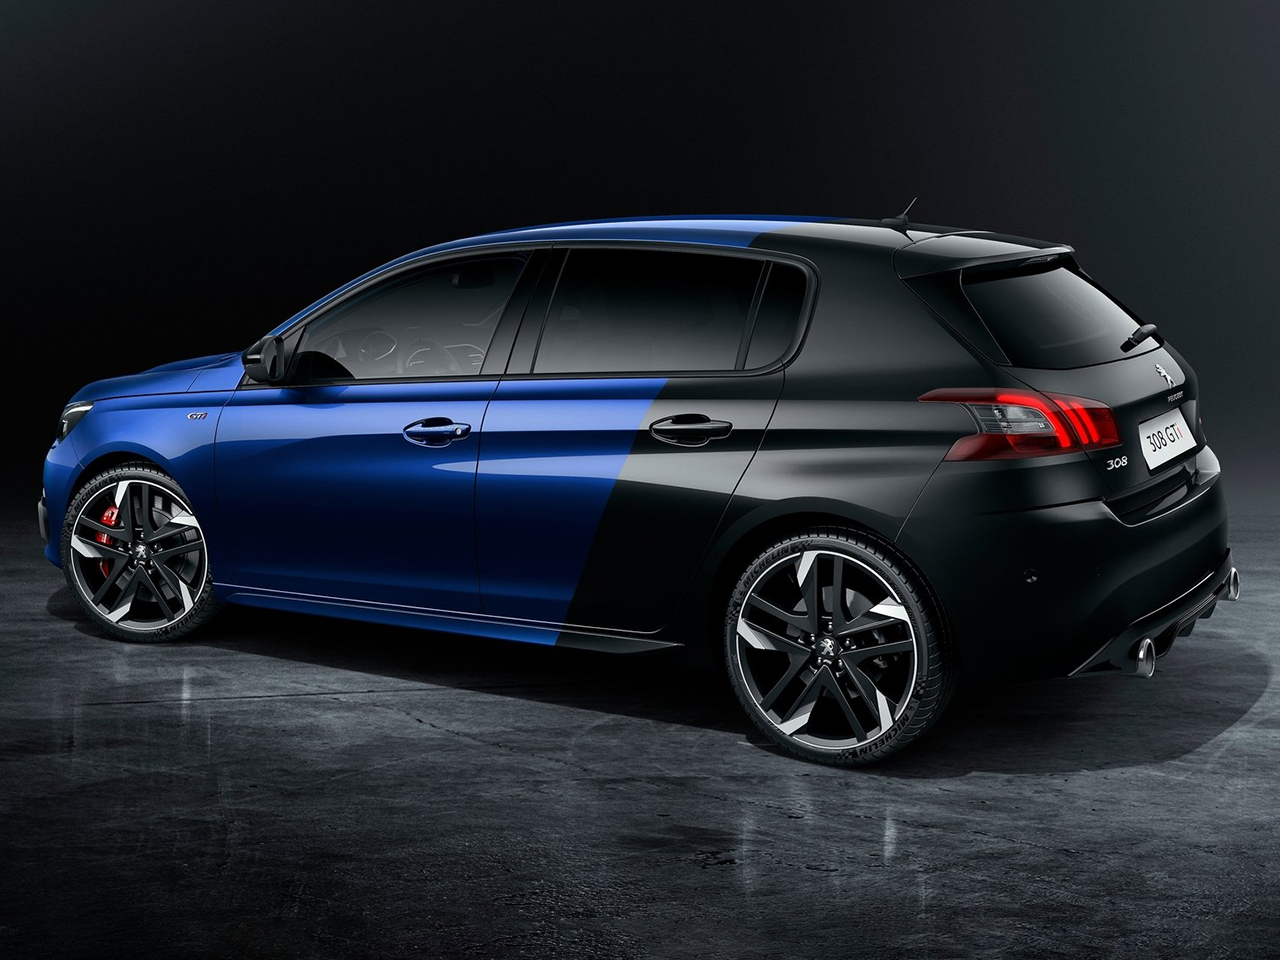 Lateral Peugeot 308 GTI